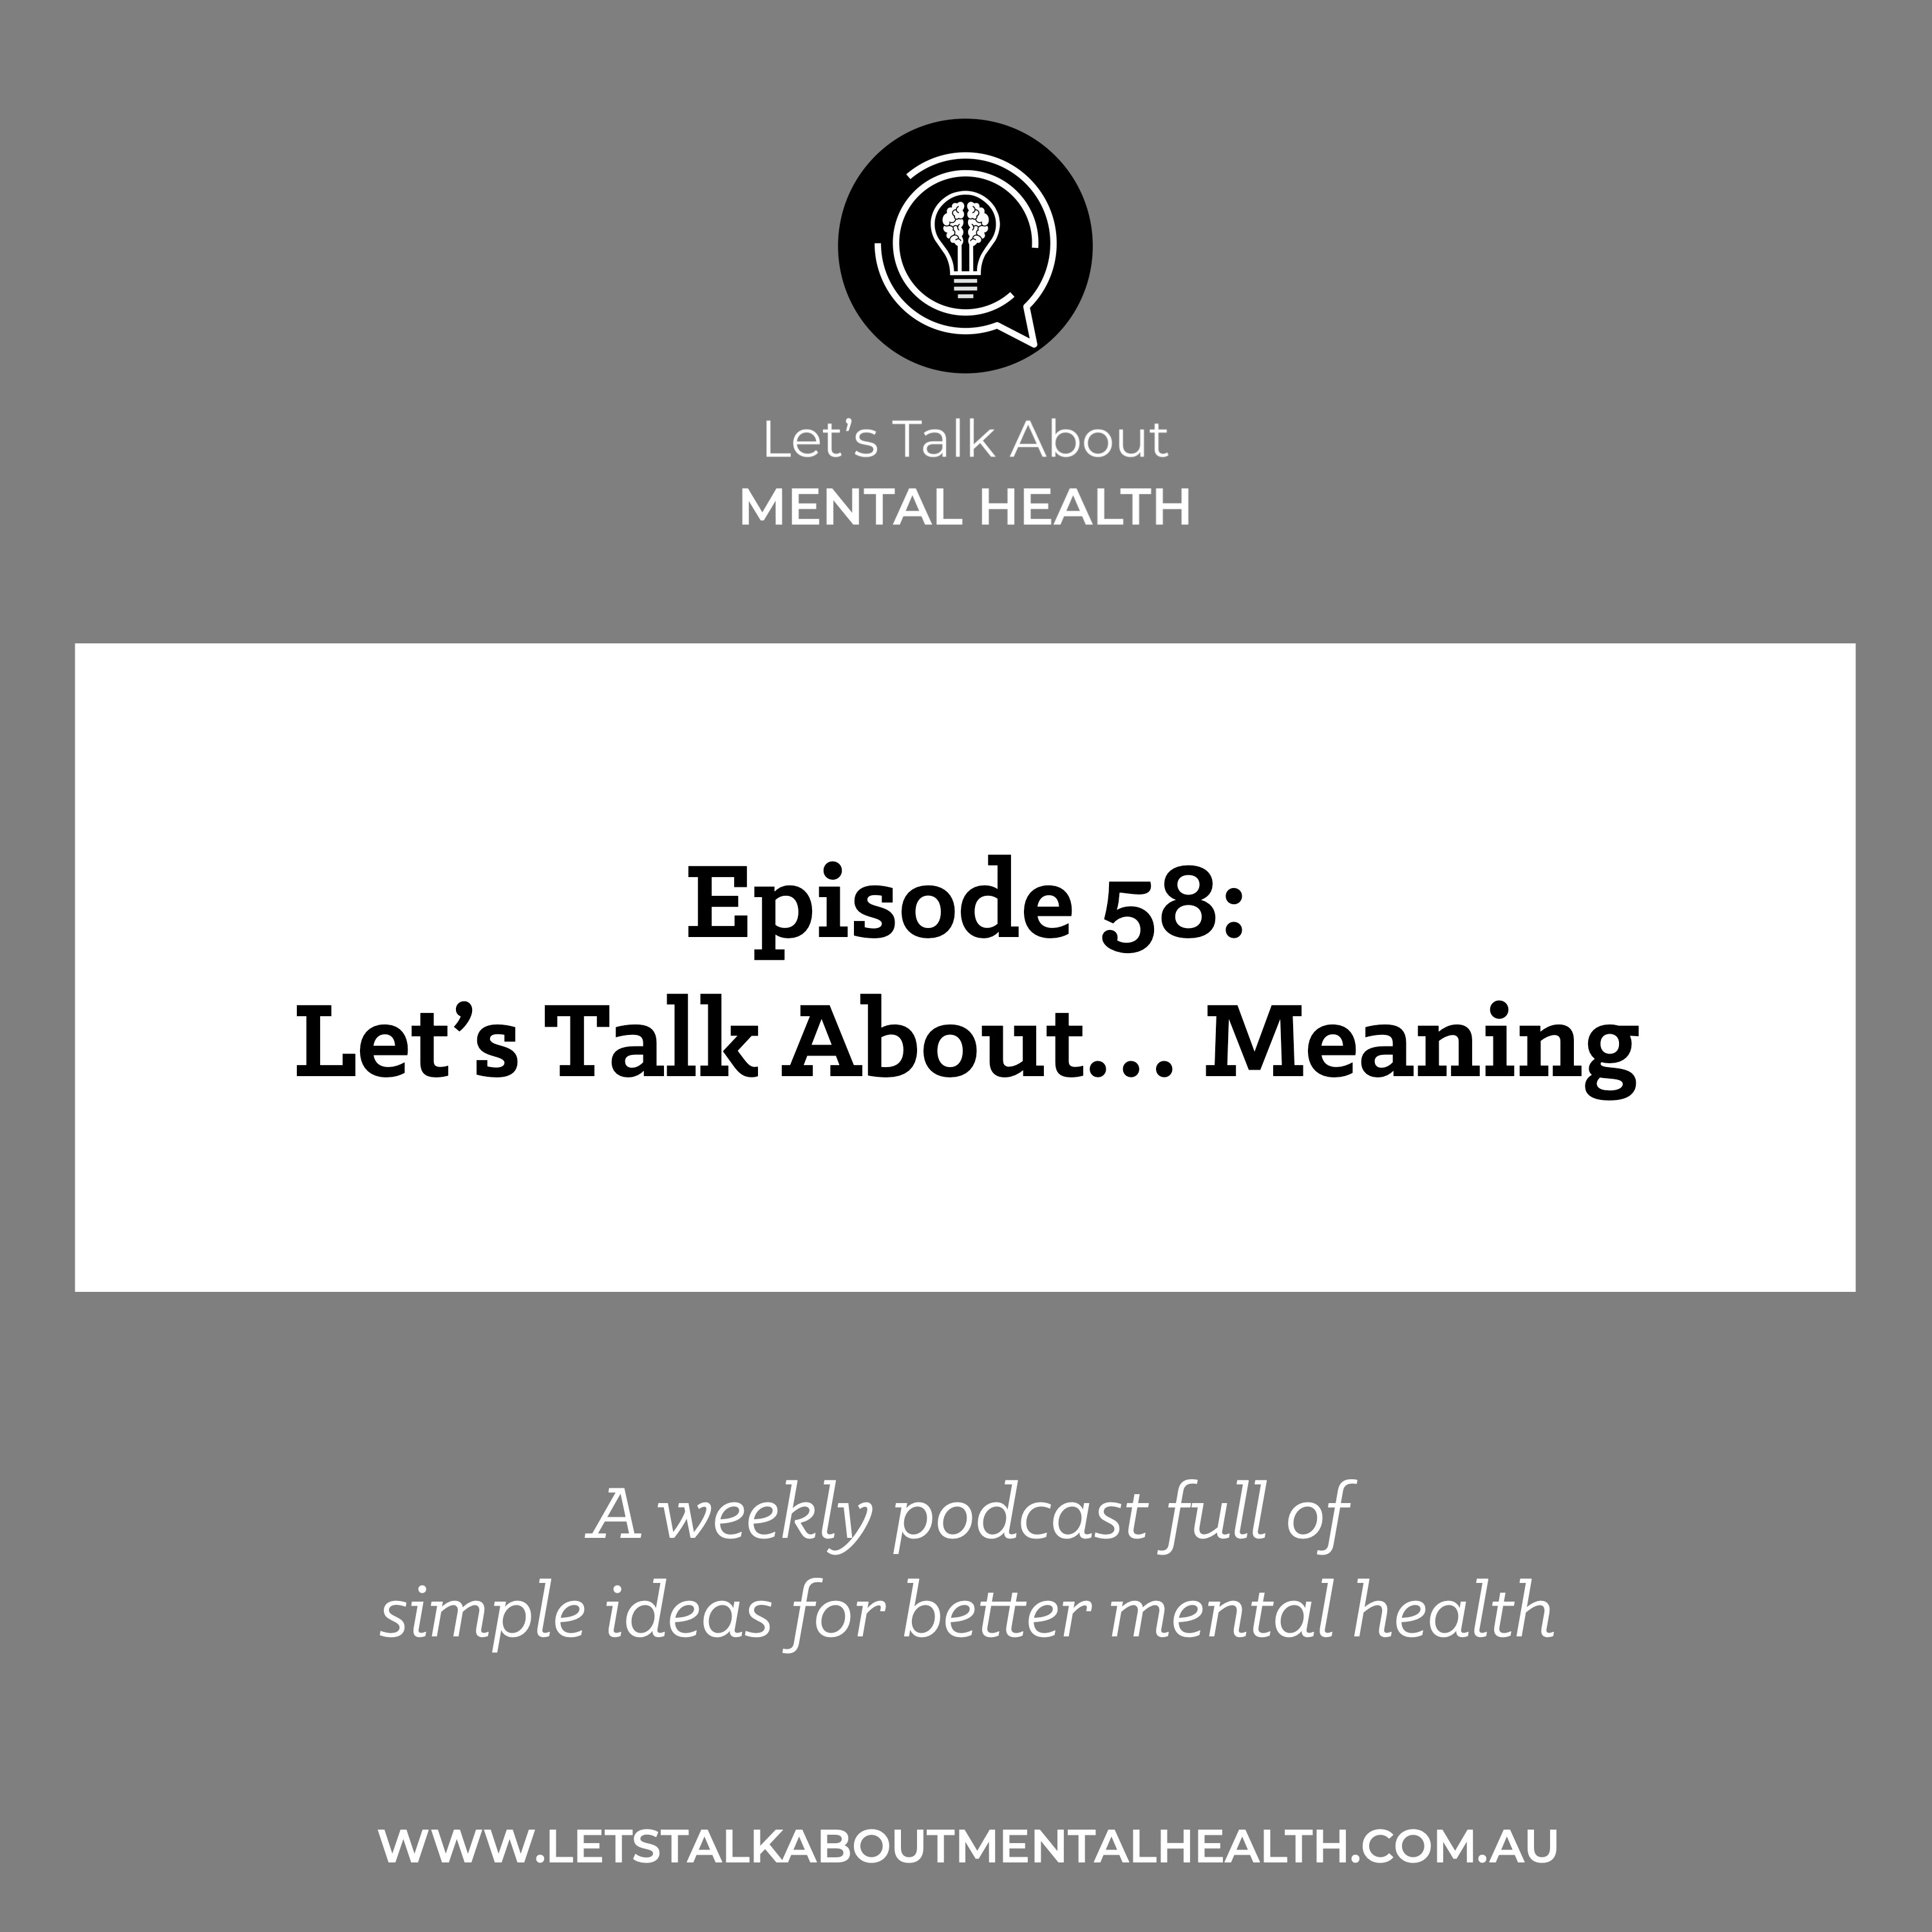 Let's Talk About Mental Health - Let's Talk About... Meaning